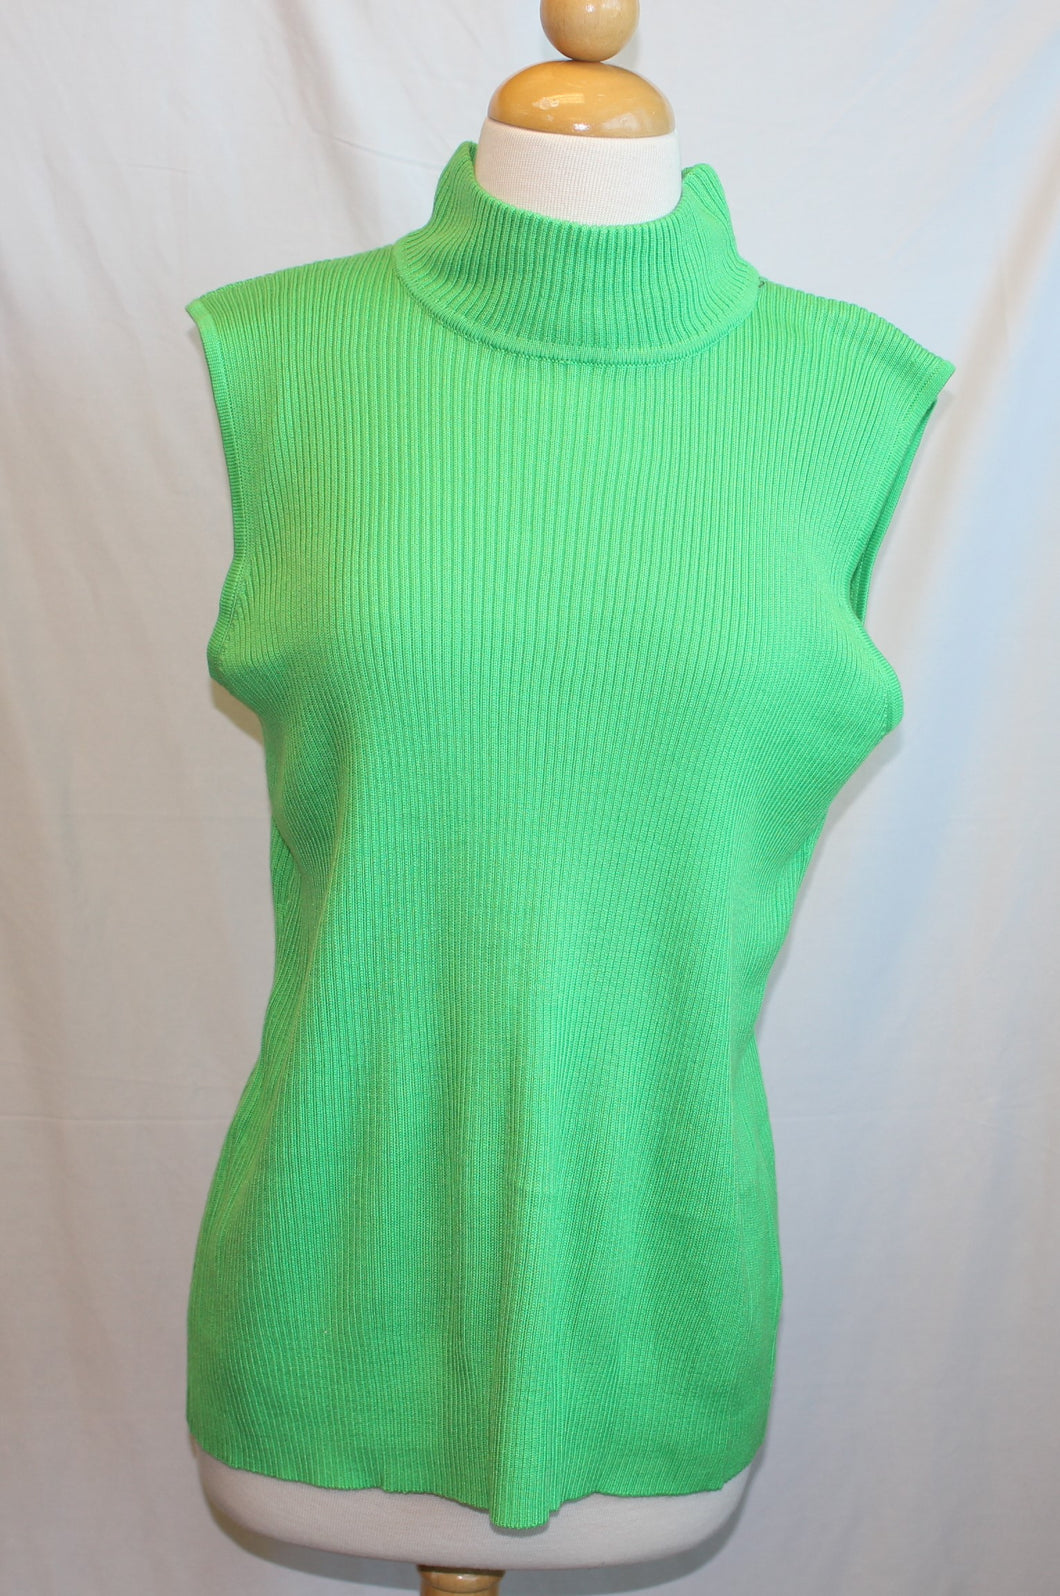 Women's Sleeveless Turtle neck Sweater                   M                           3/31A